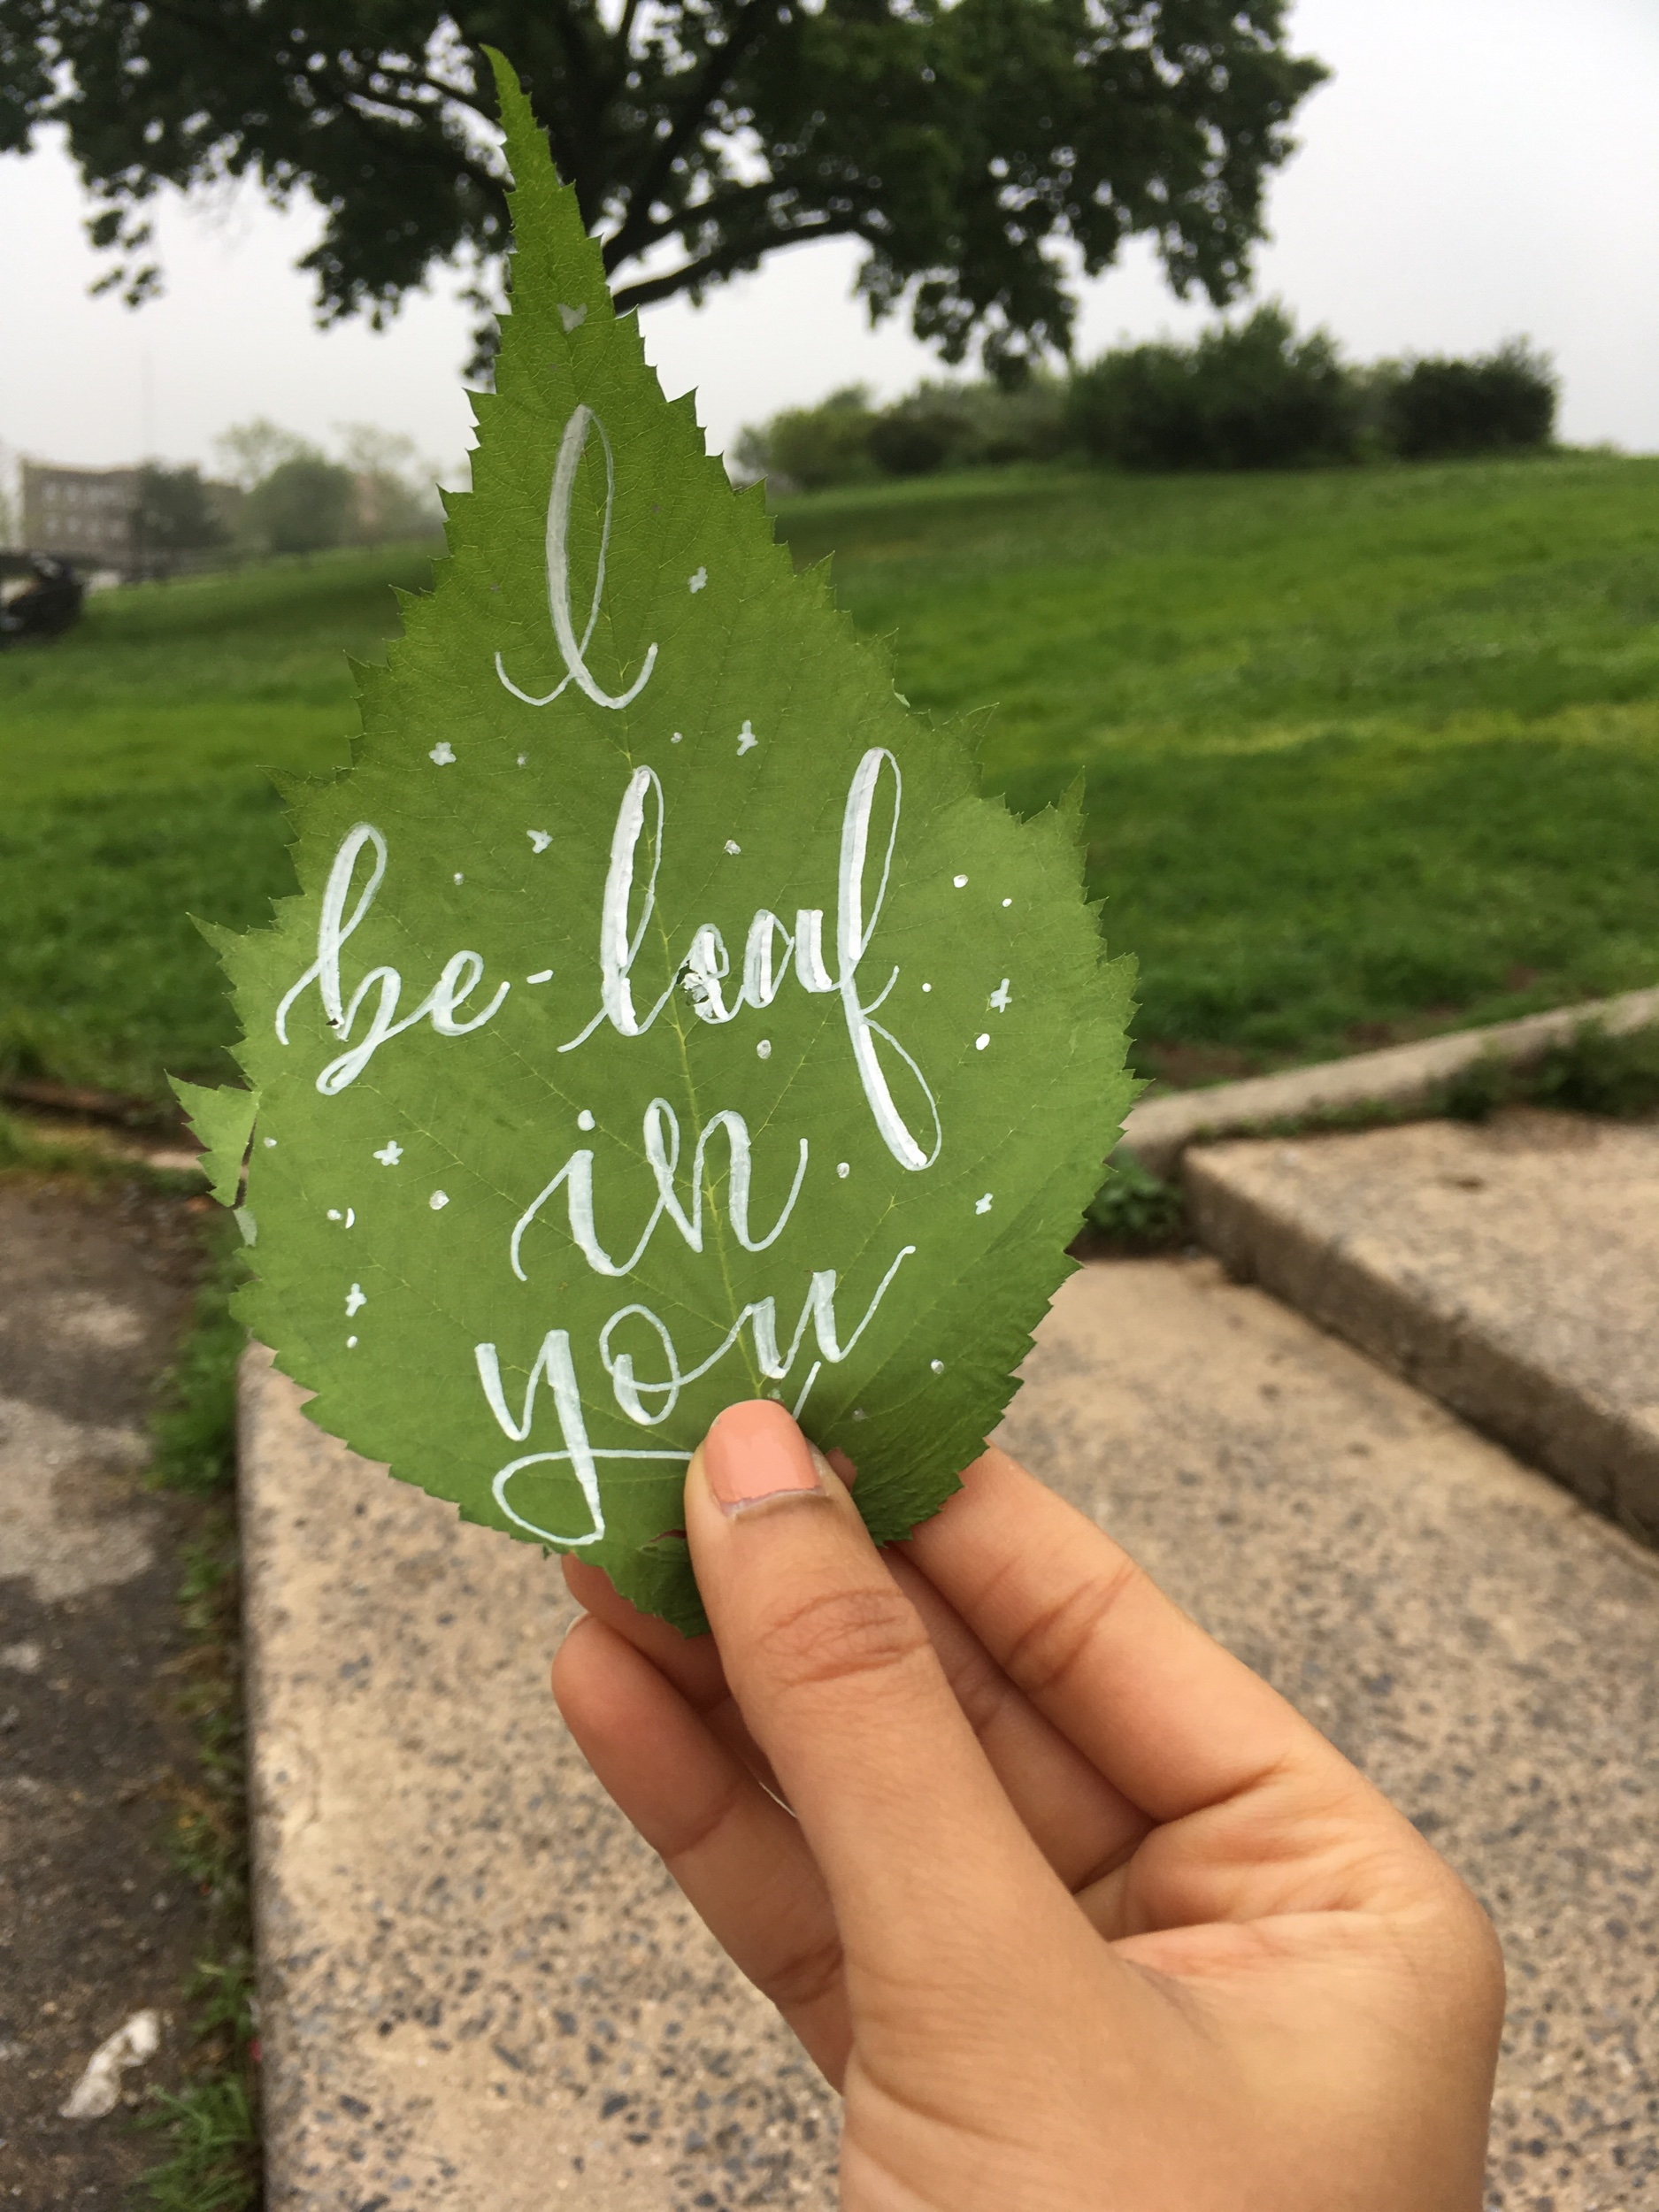 This leaf was written with the faux calligraphy technique using a marker.